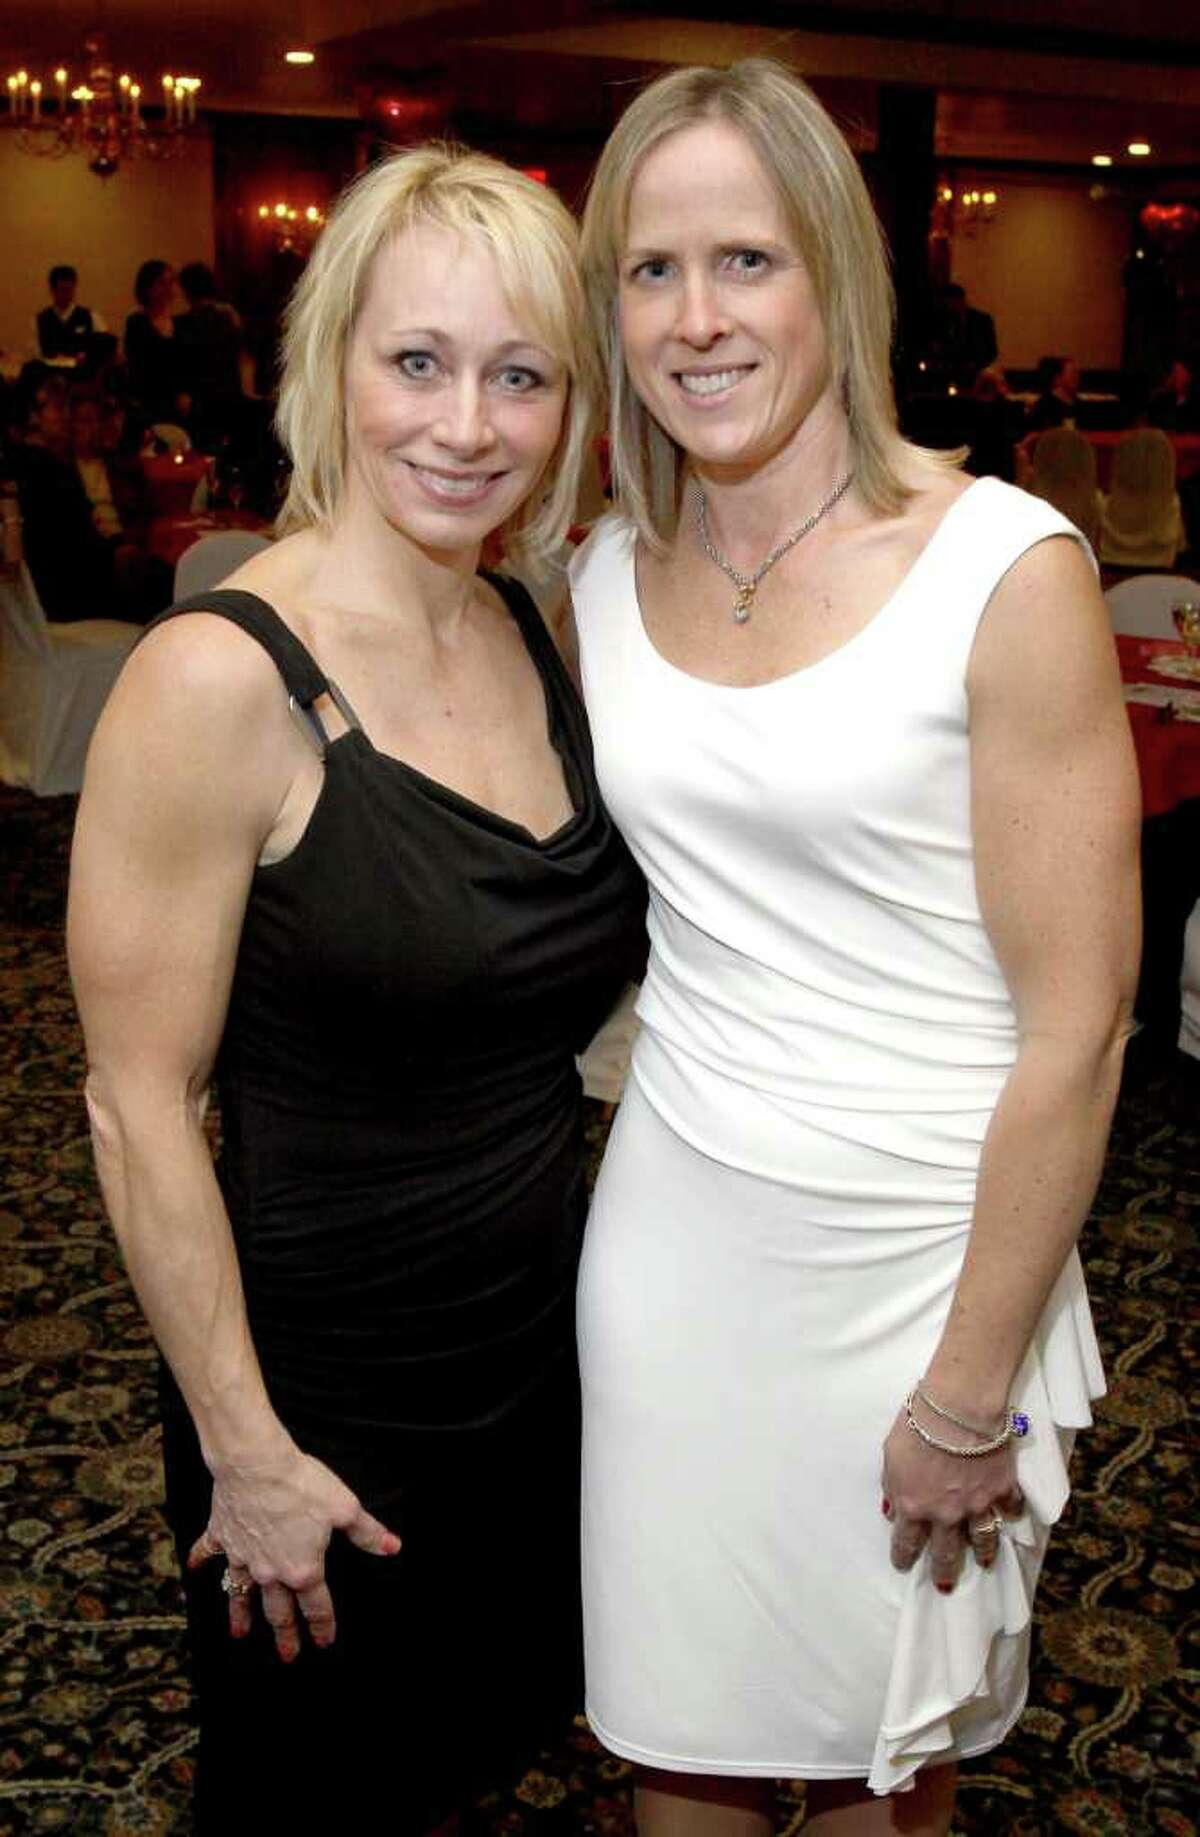 Marcie Fraser, left, YNN health reporter and event emcee, with Krista Comanzo. (Joe Putrock / Special to the Times Union)